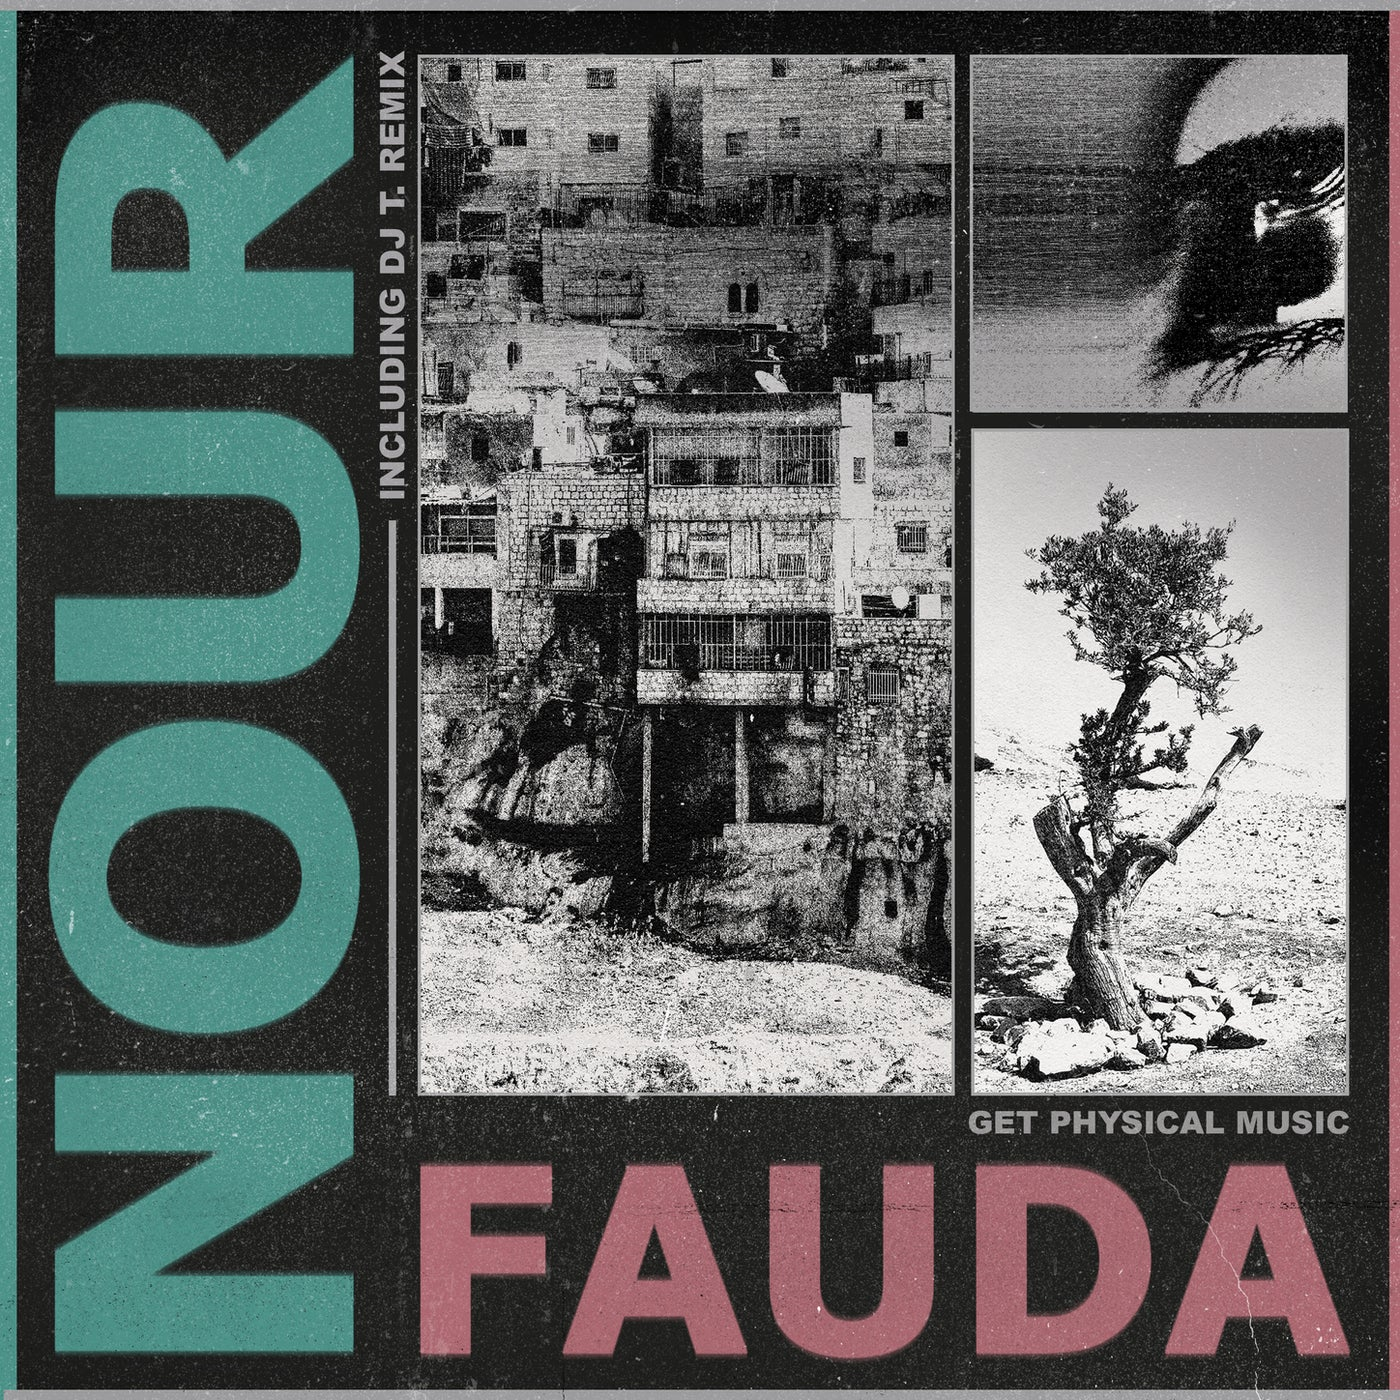 Download Fauda on Electrobuzz